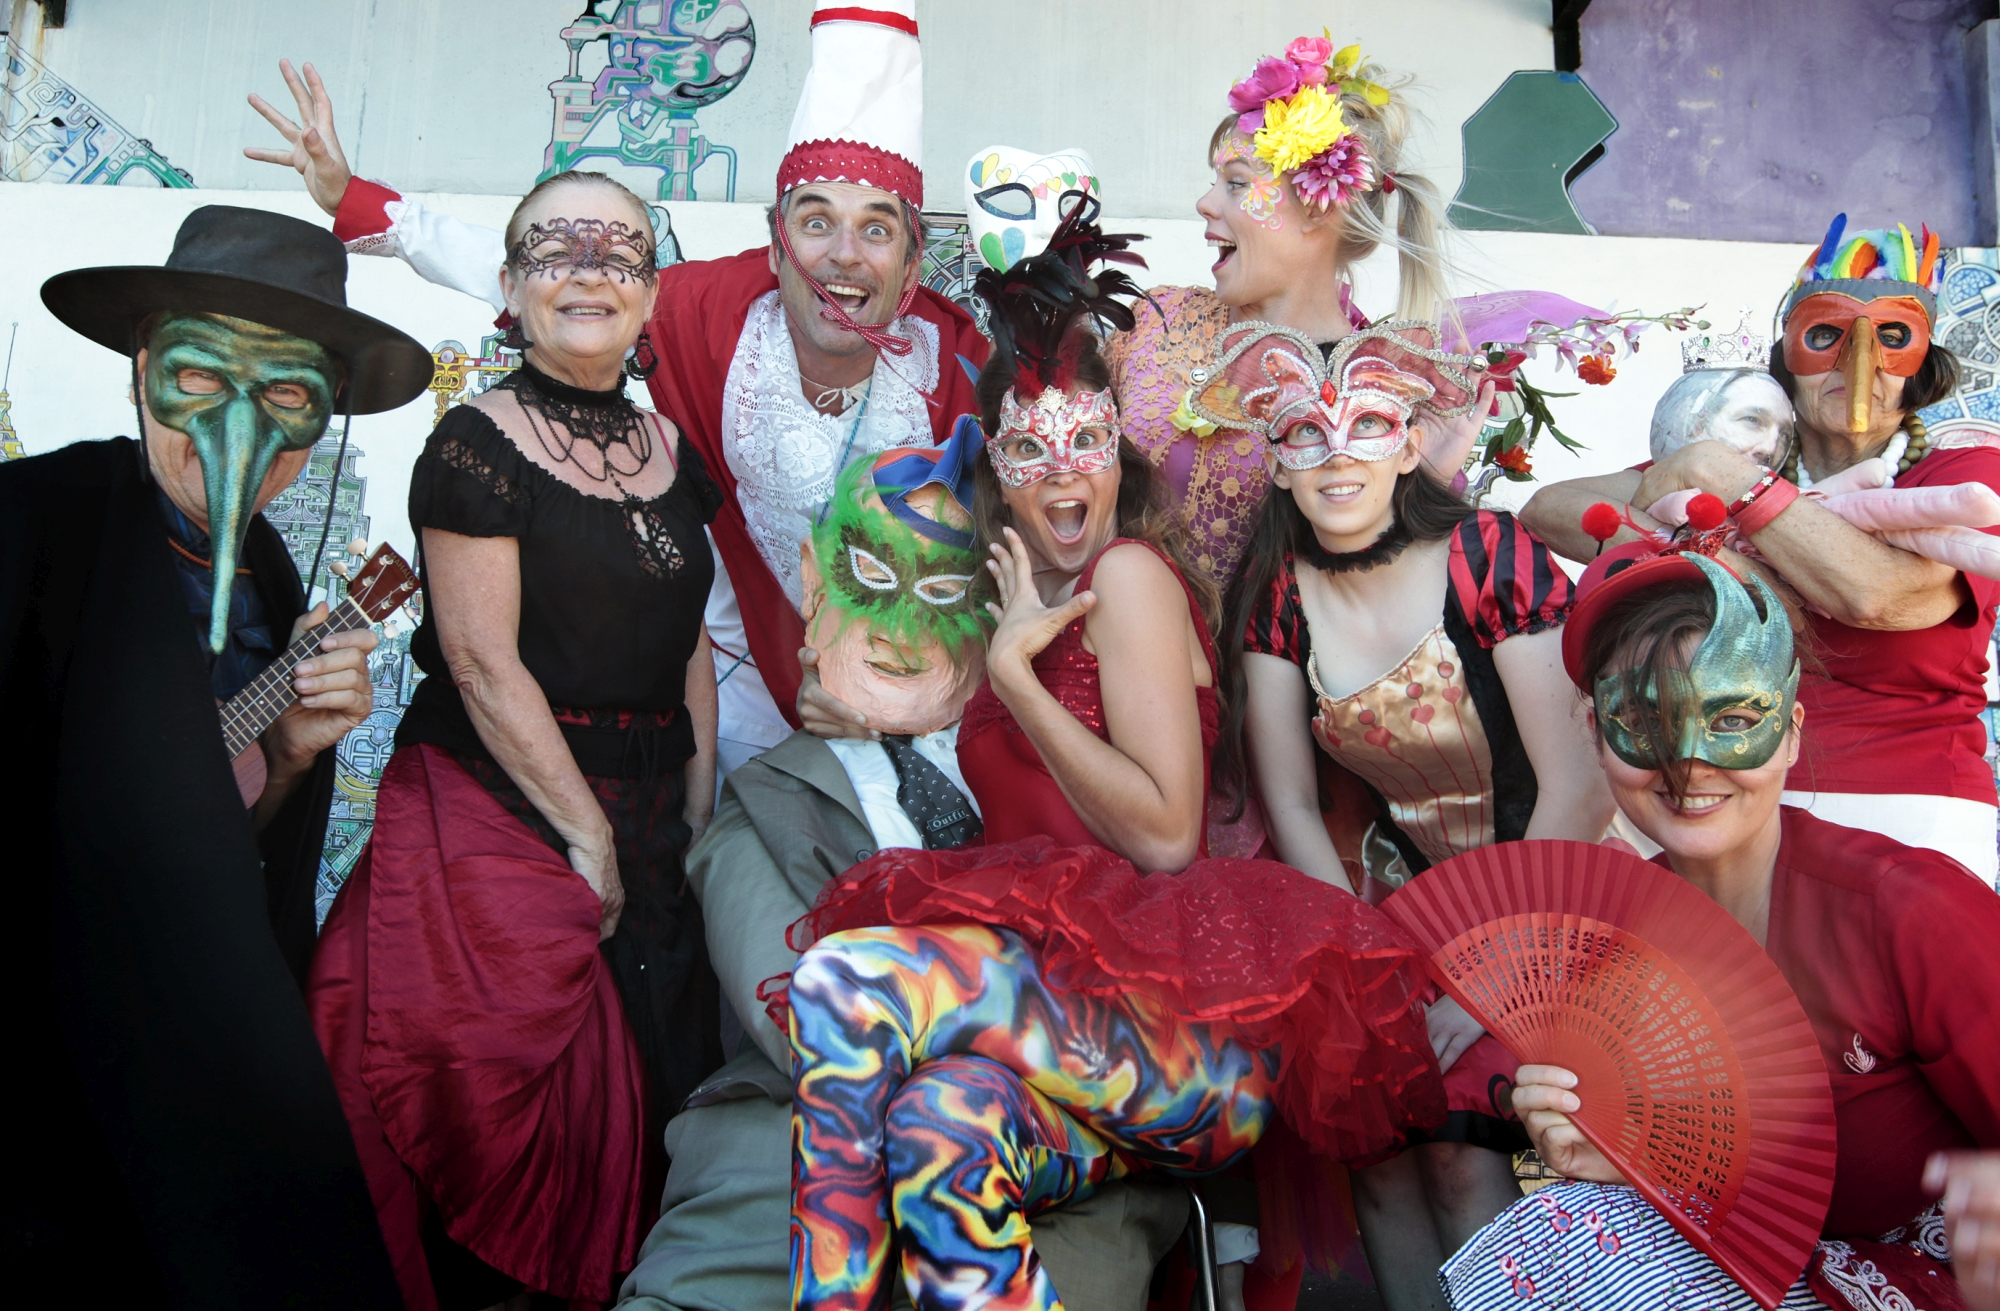 Carnevale performers get into the spirit of the colourful event. Picture: Martin Kennealey d415555